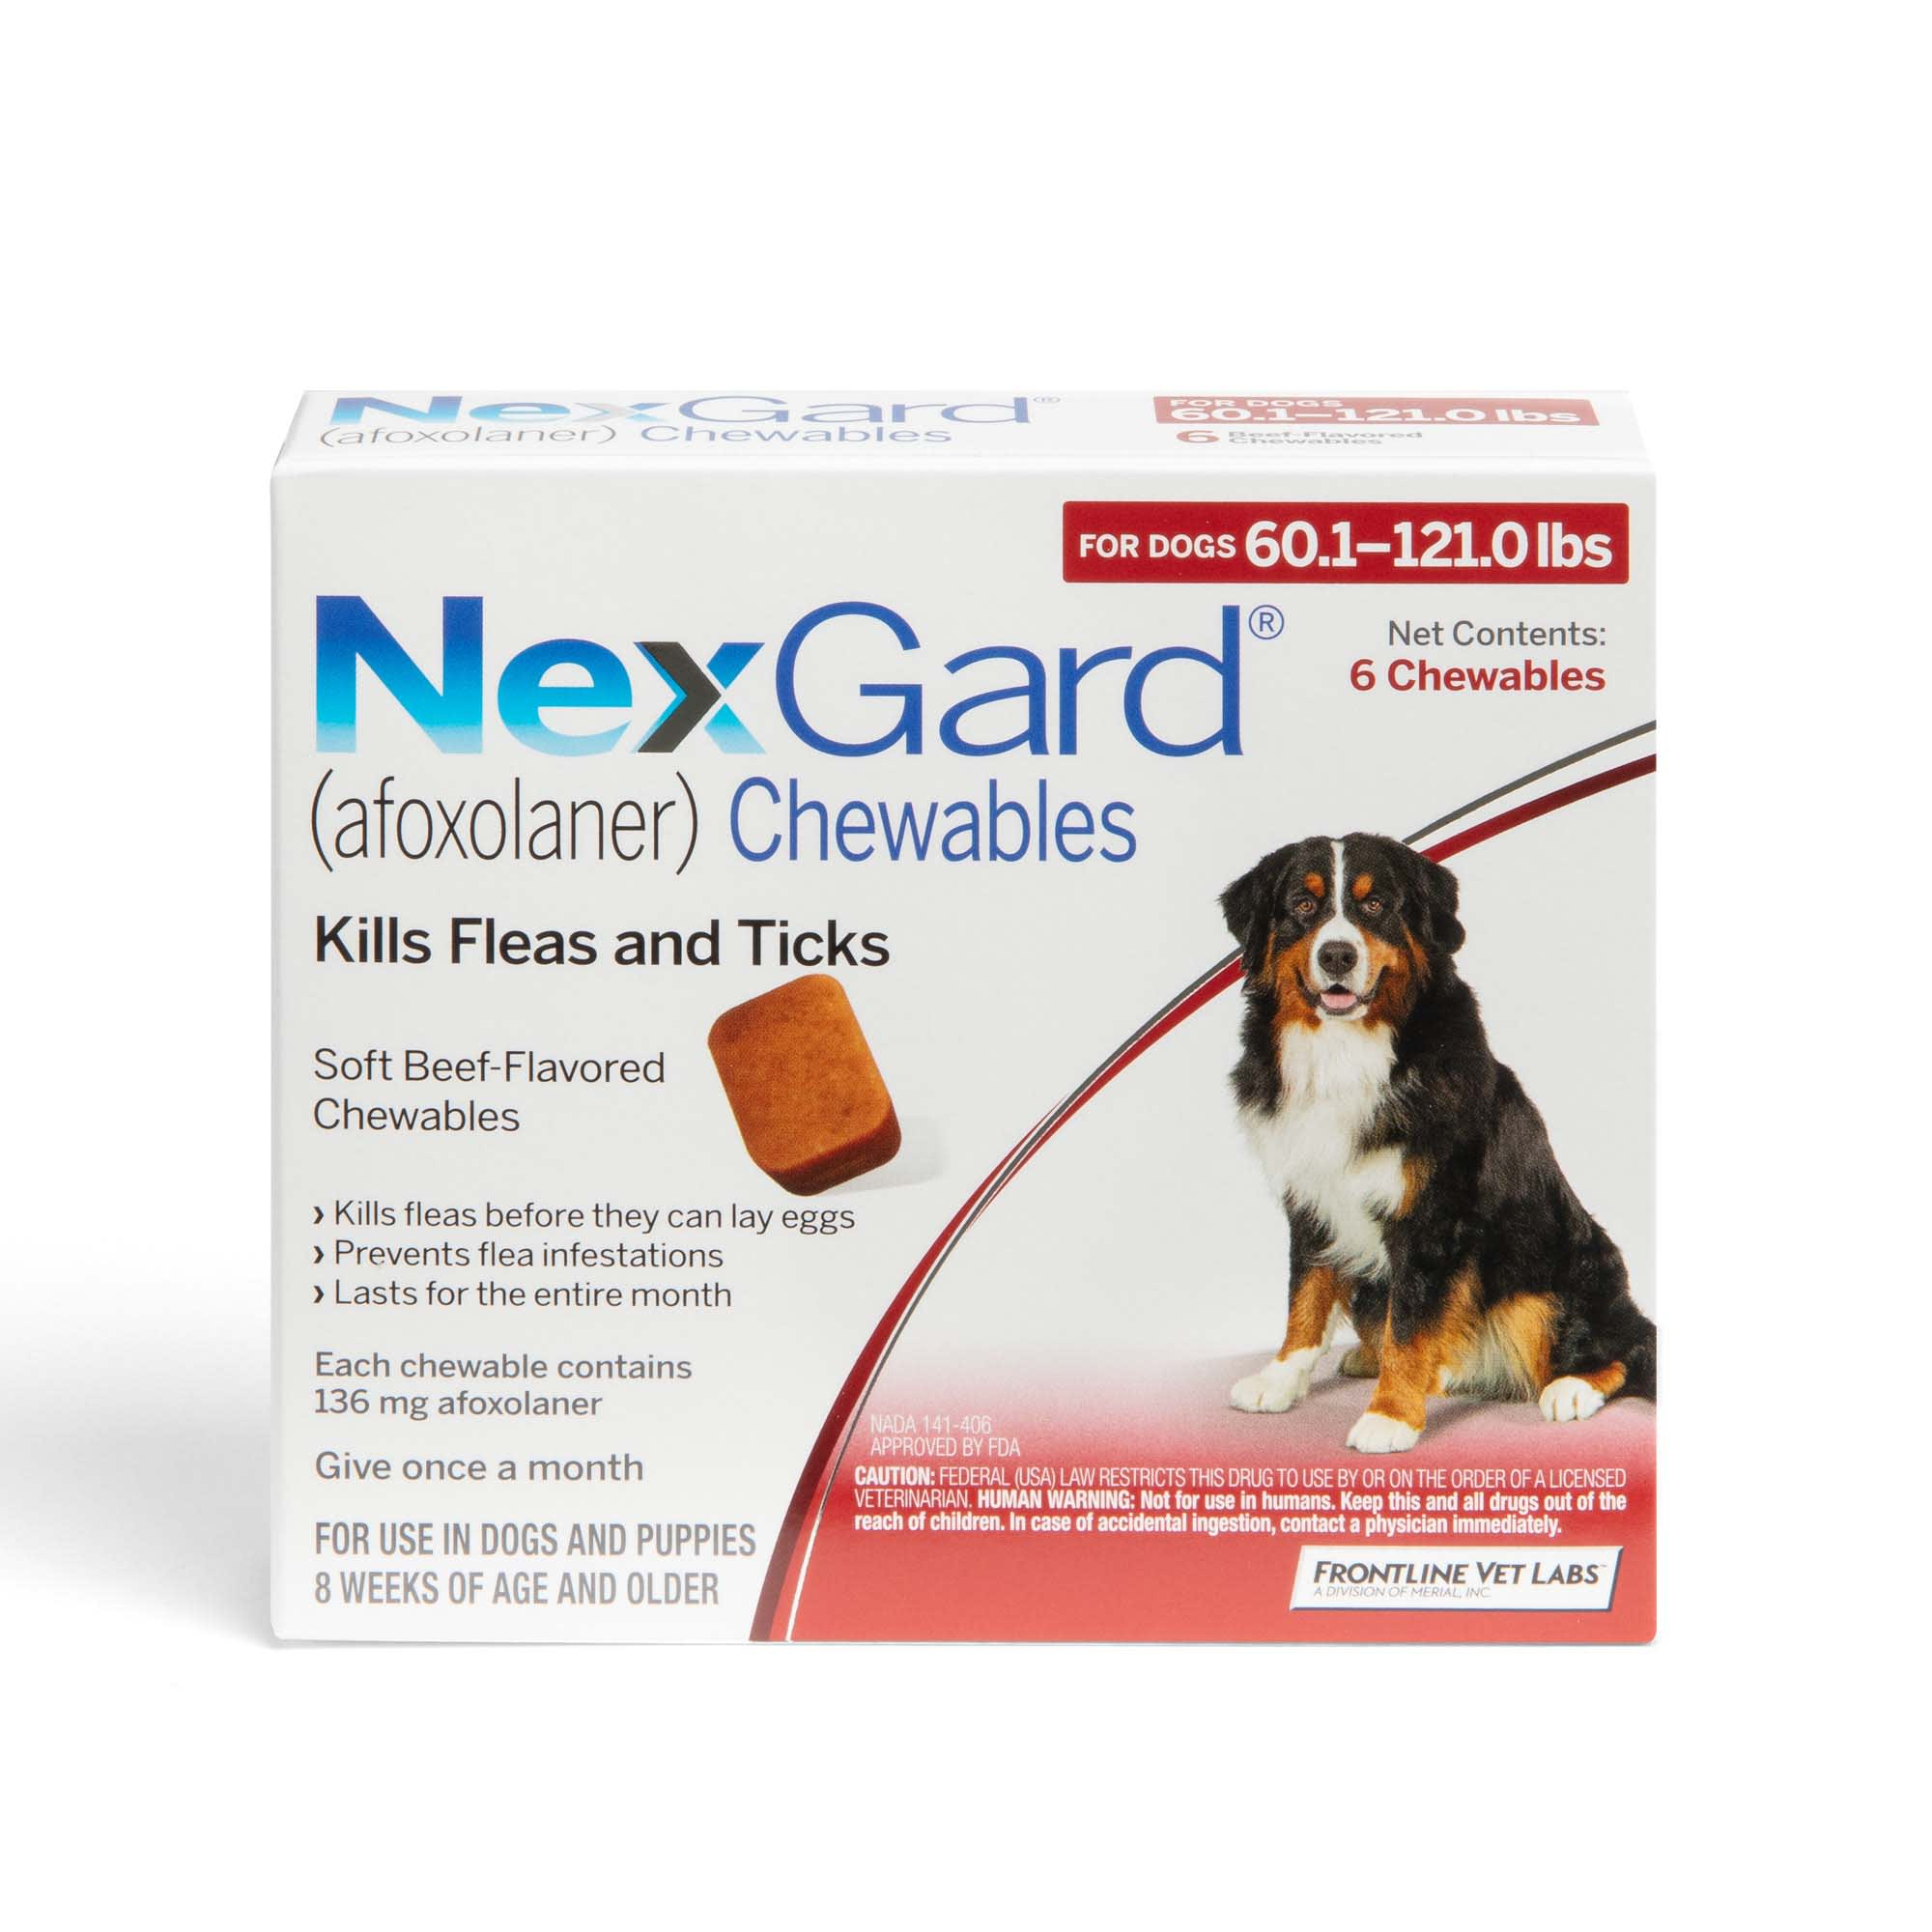 Nexgard Chewables Red For Dogs 60 1 To 121 Lbs 3 Pack Petco